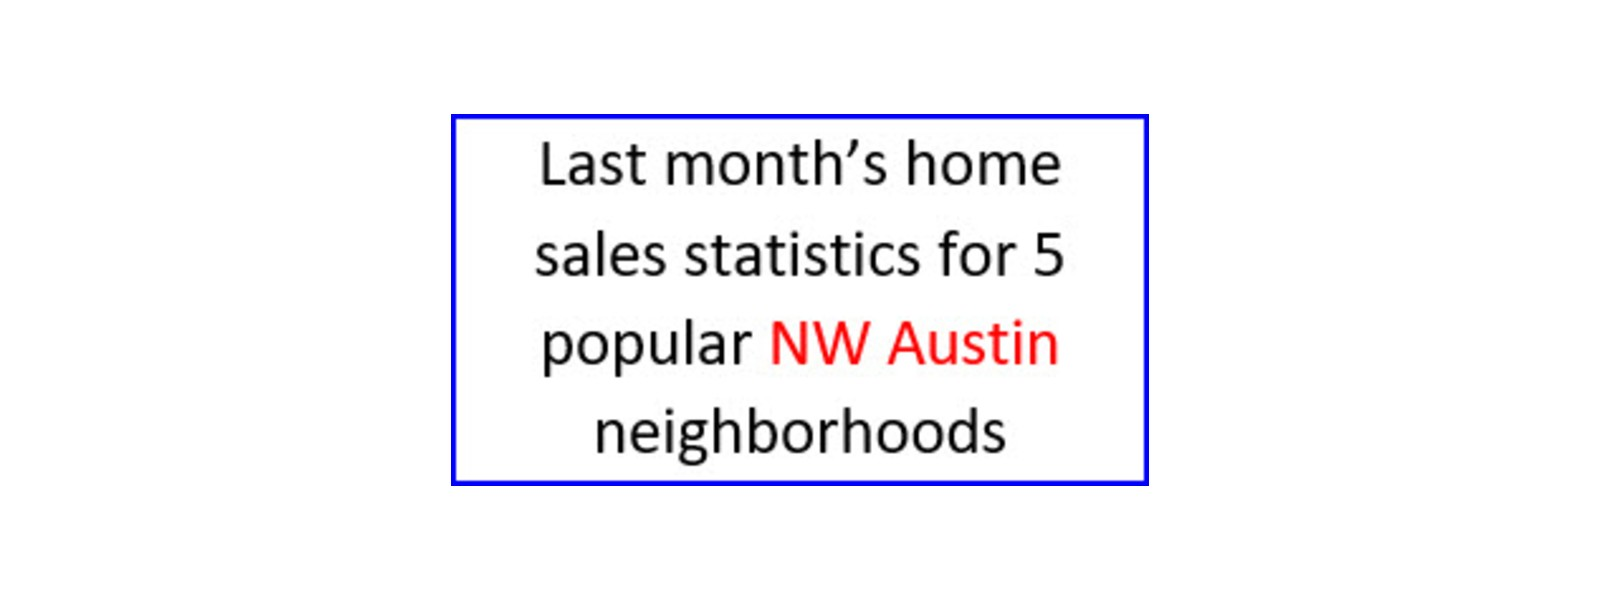 May home sales statistics for 5 popular NW Austin neighborhoods